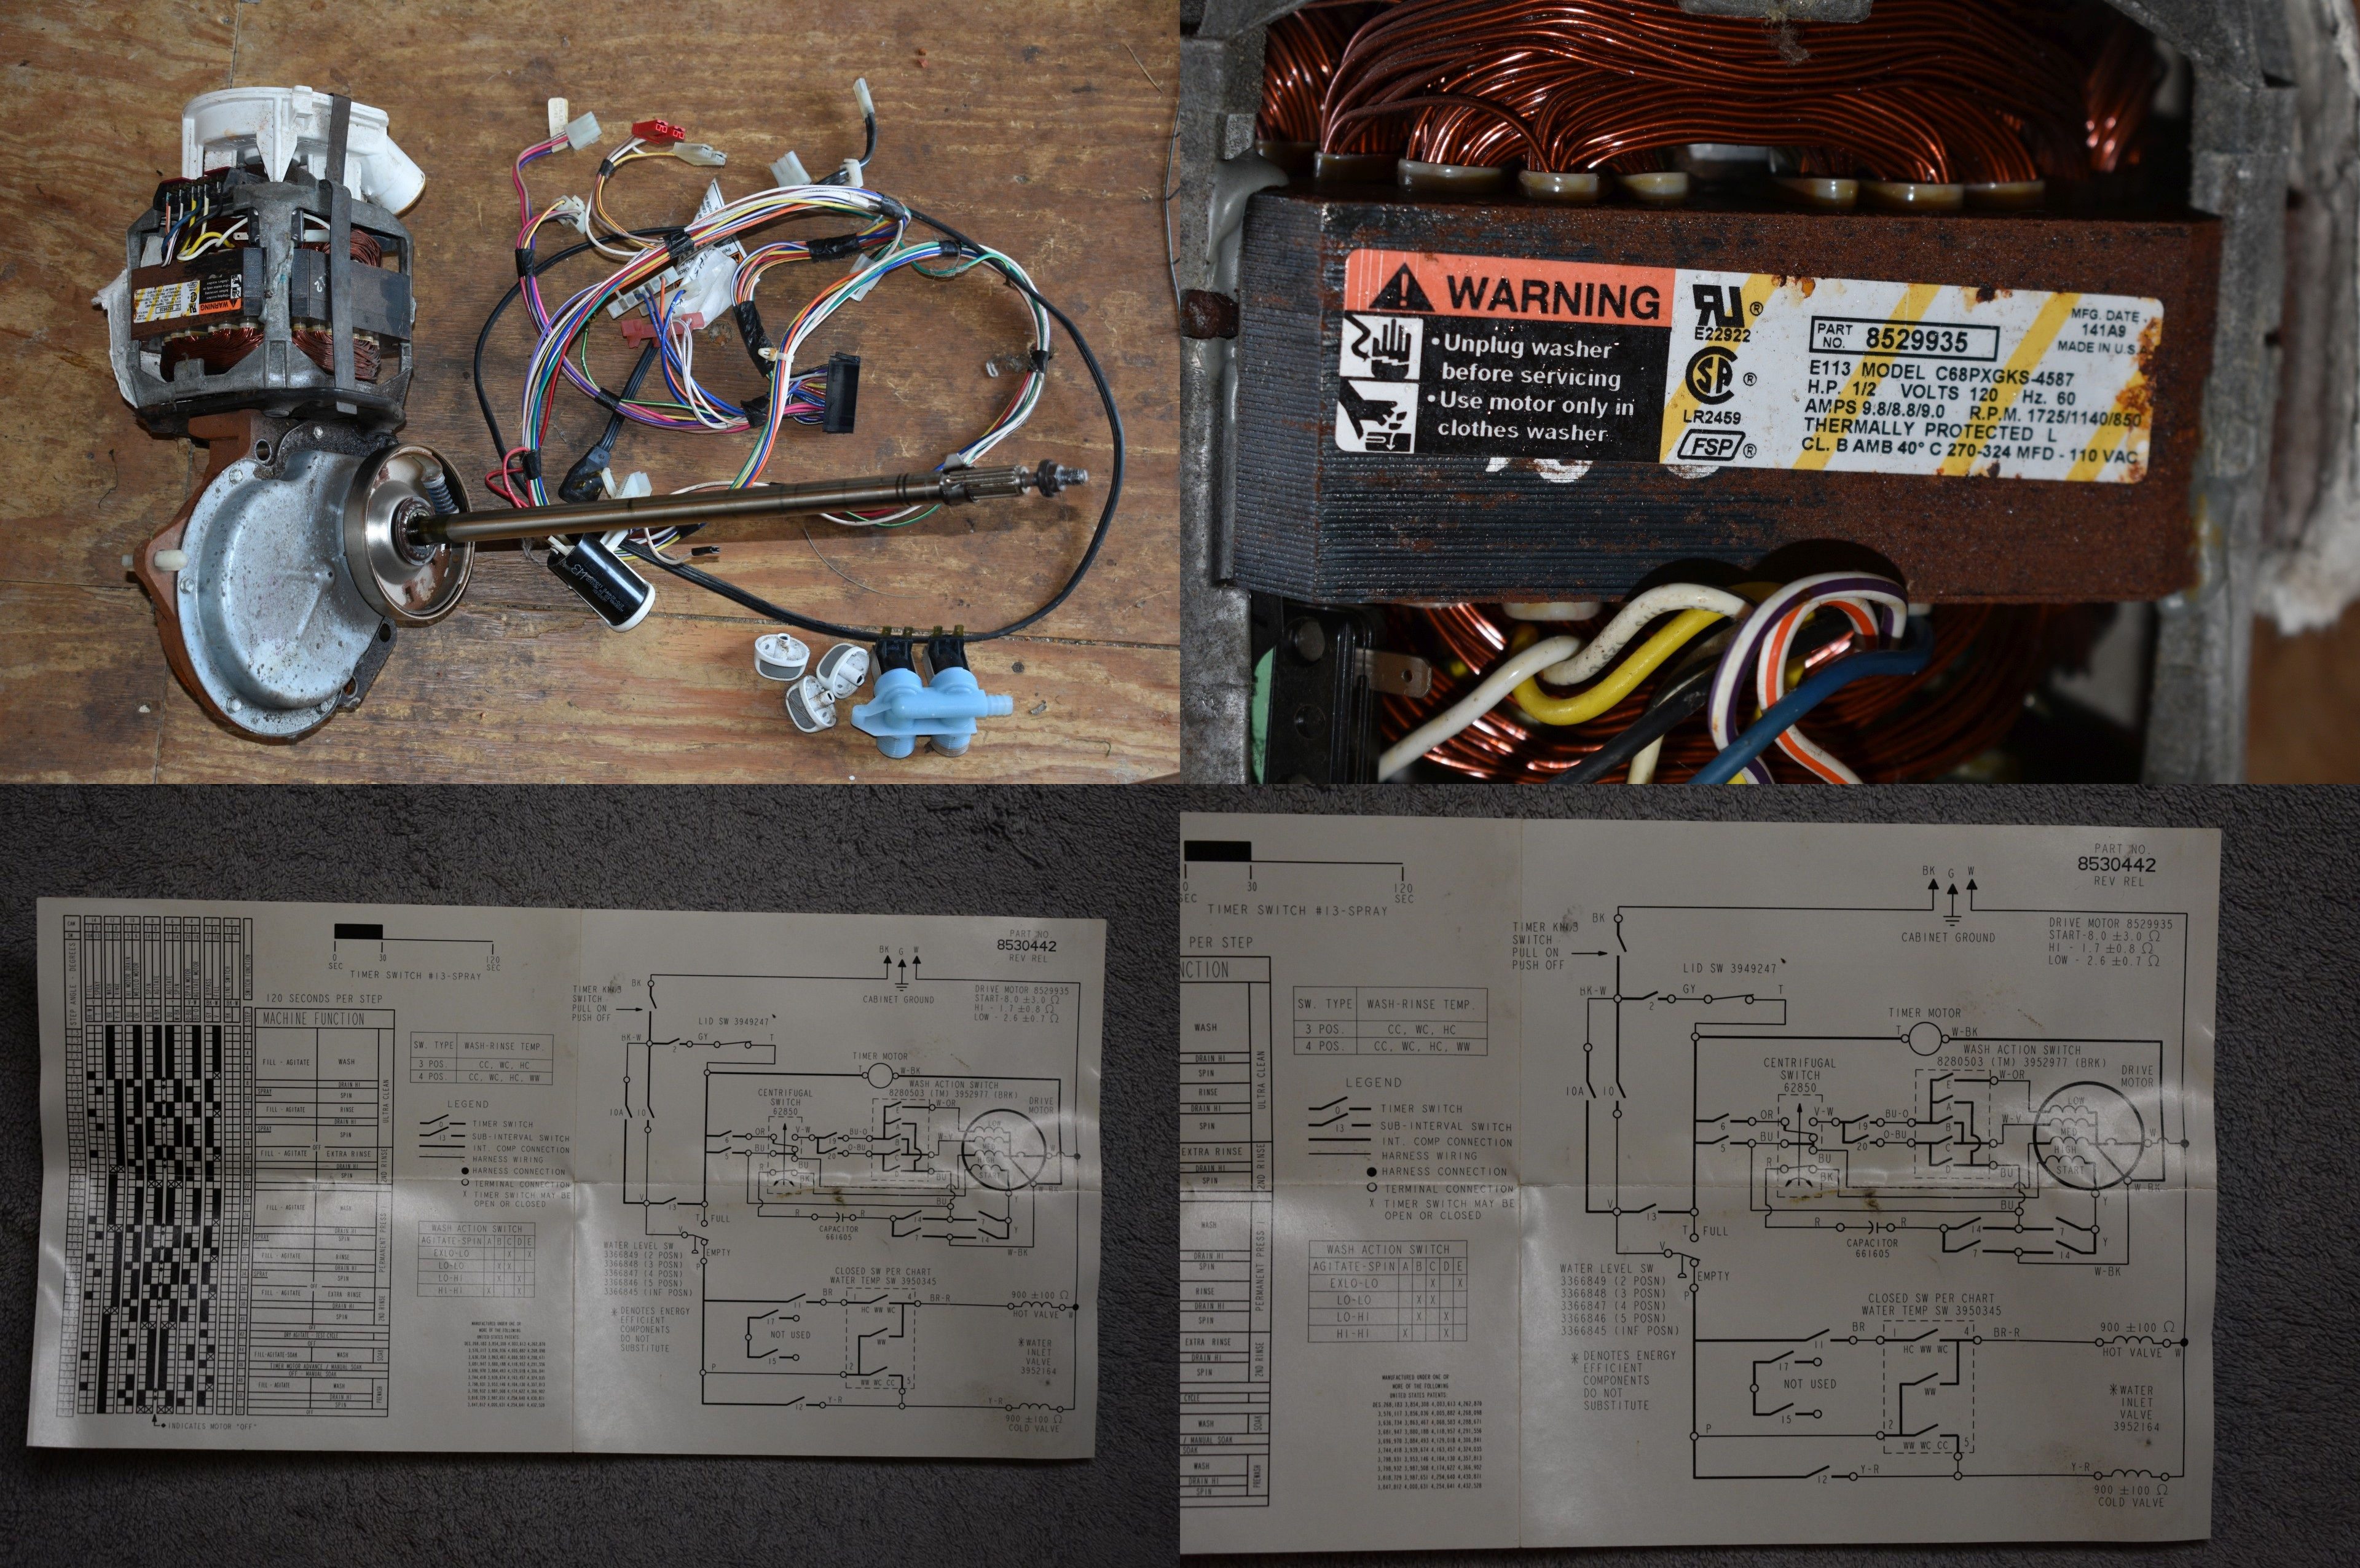 Diy Do It Yourself Search Mb Wiring Harness I Have A 1 2hp 110v Kenmore Series 40 Motor Water Pump And Transmission Also The Cap Diagram